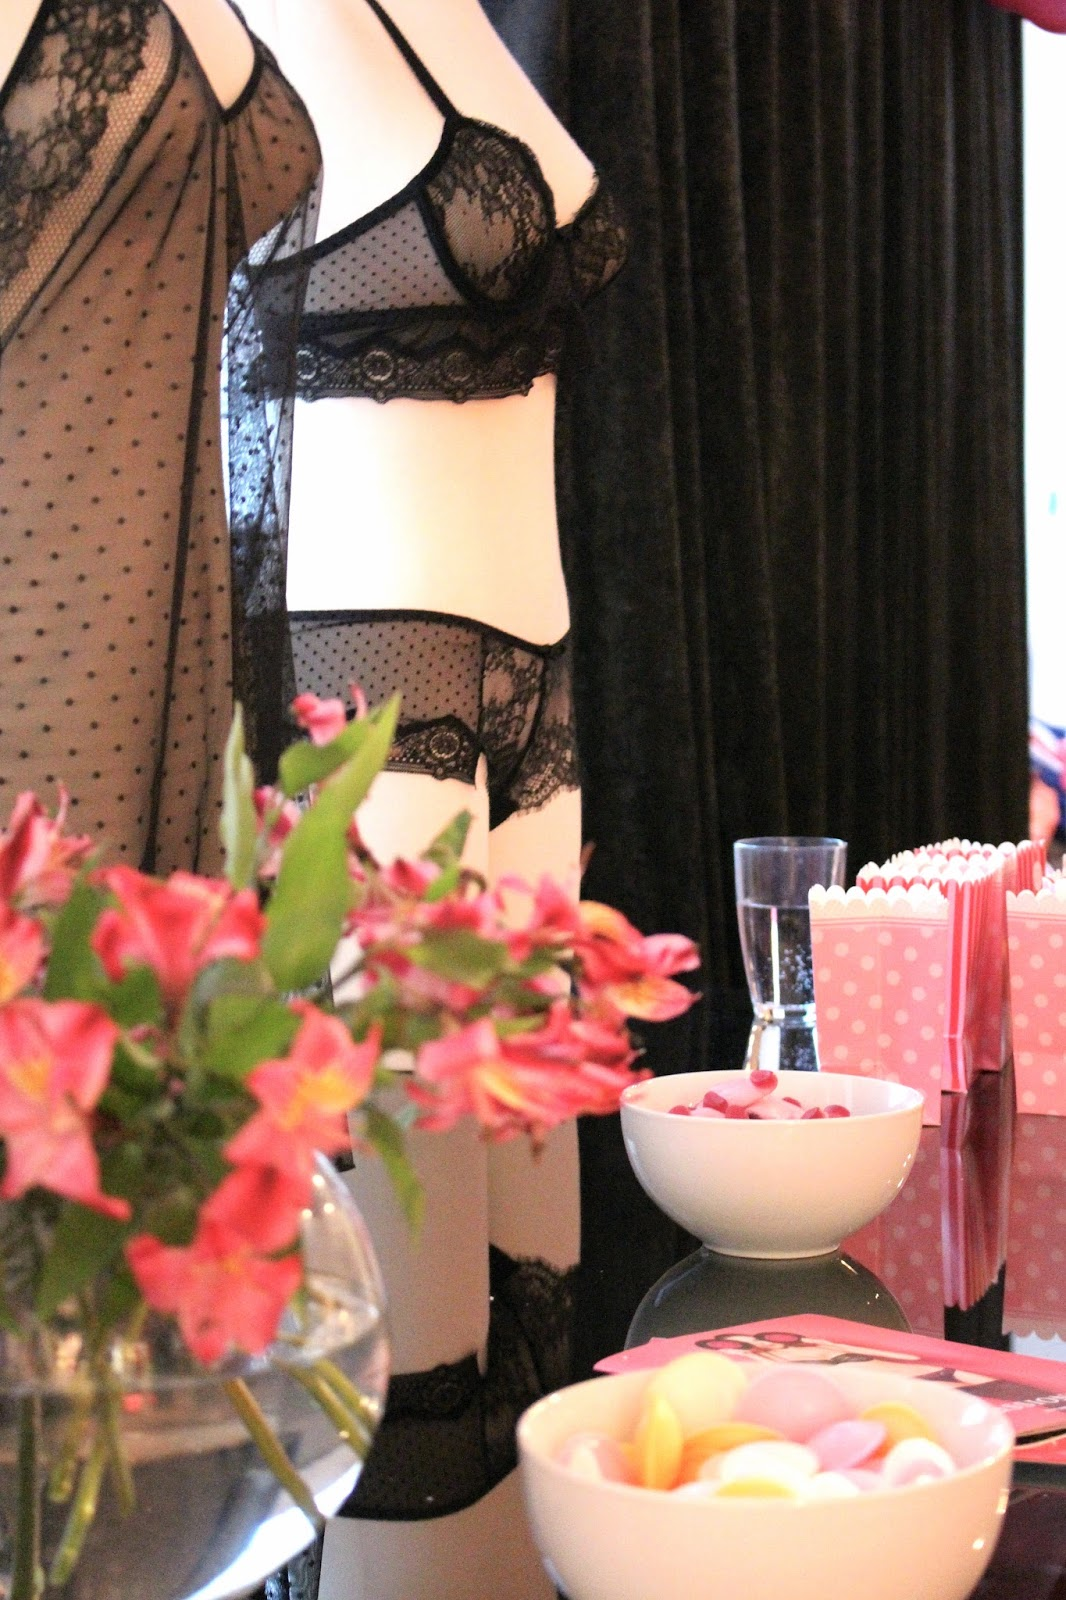 Passionata lingerie UK fashion blog event